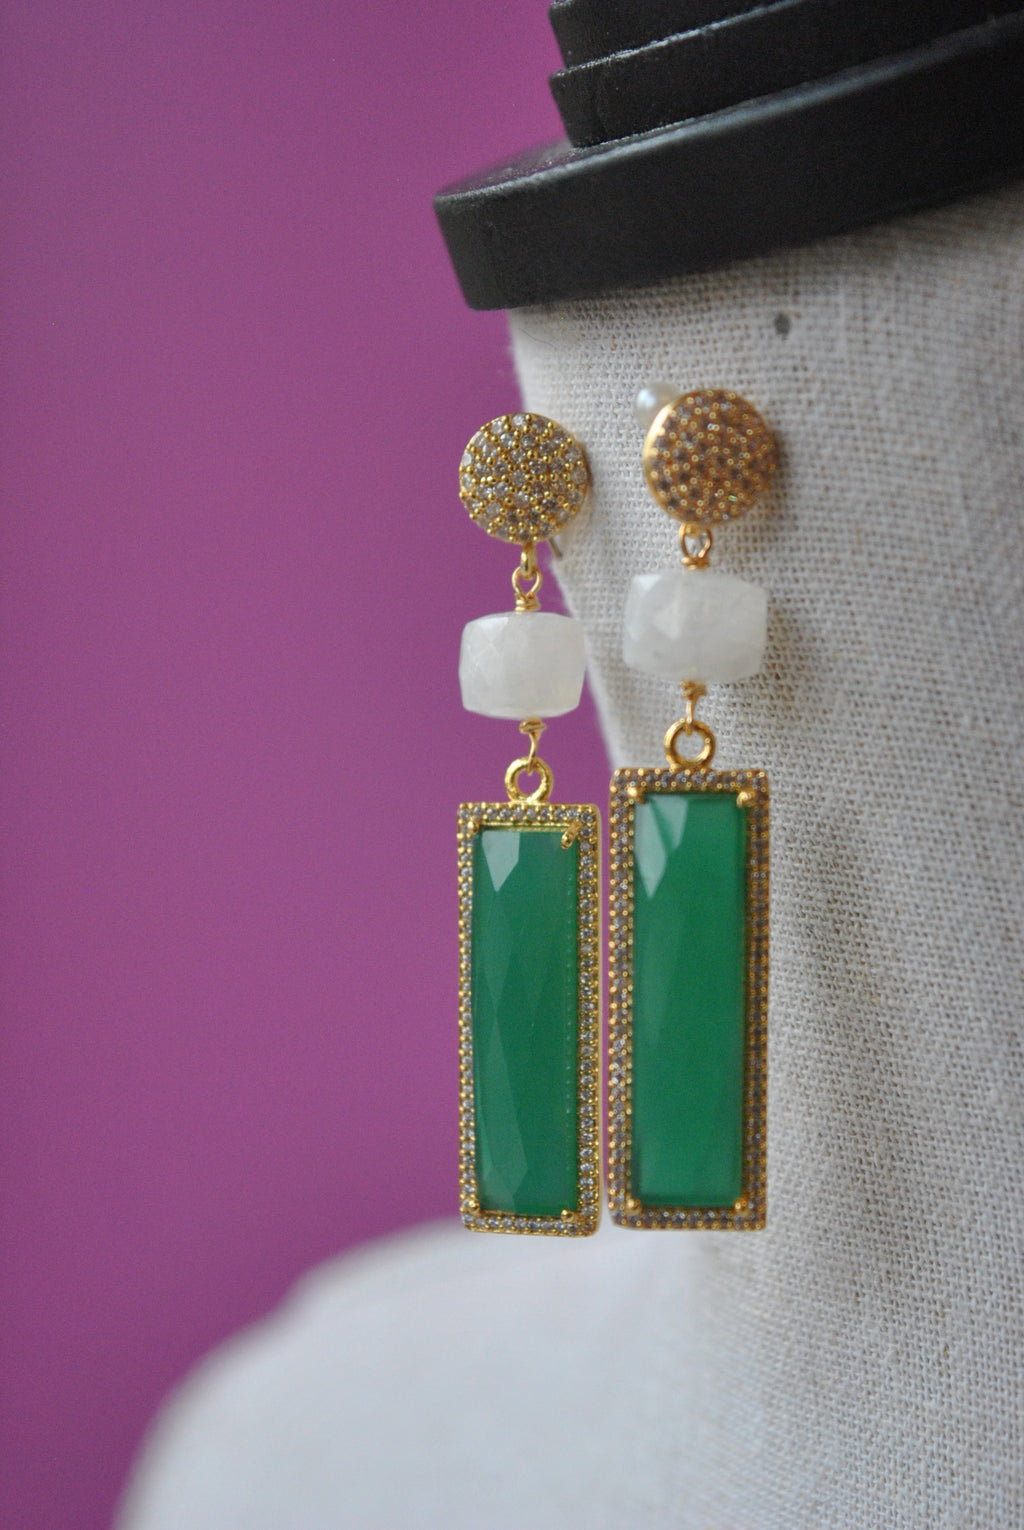 GREEN ONYX MOONSTONES AND RHINESTONES ON GOLD ELEGANT EARRINGS